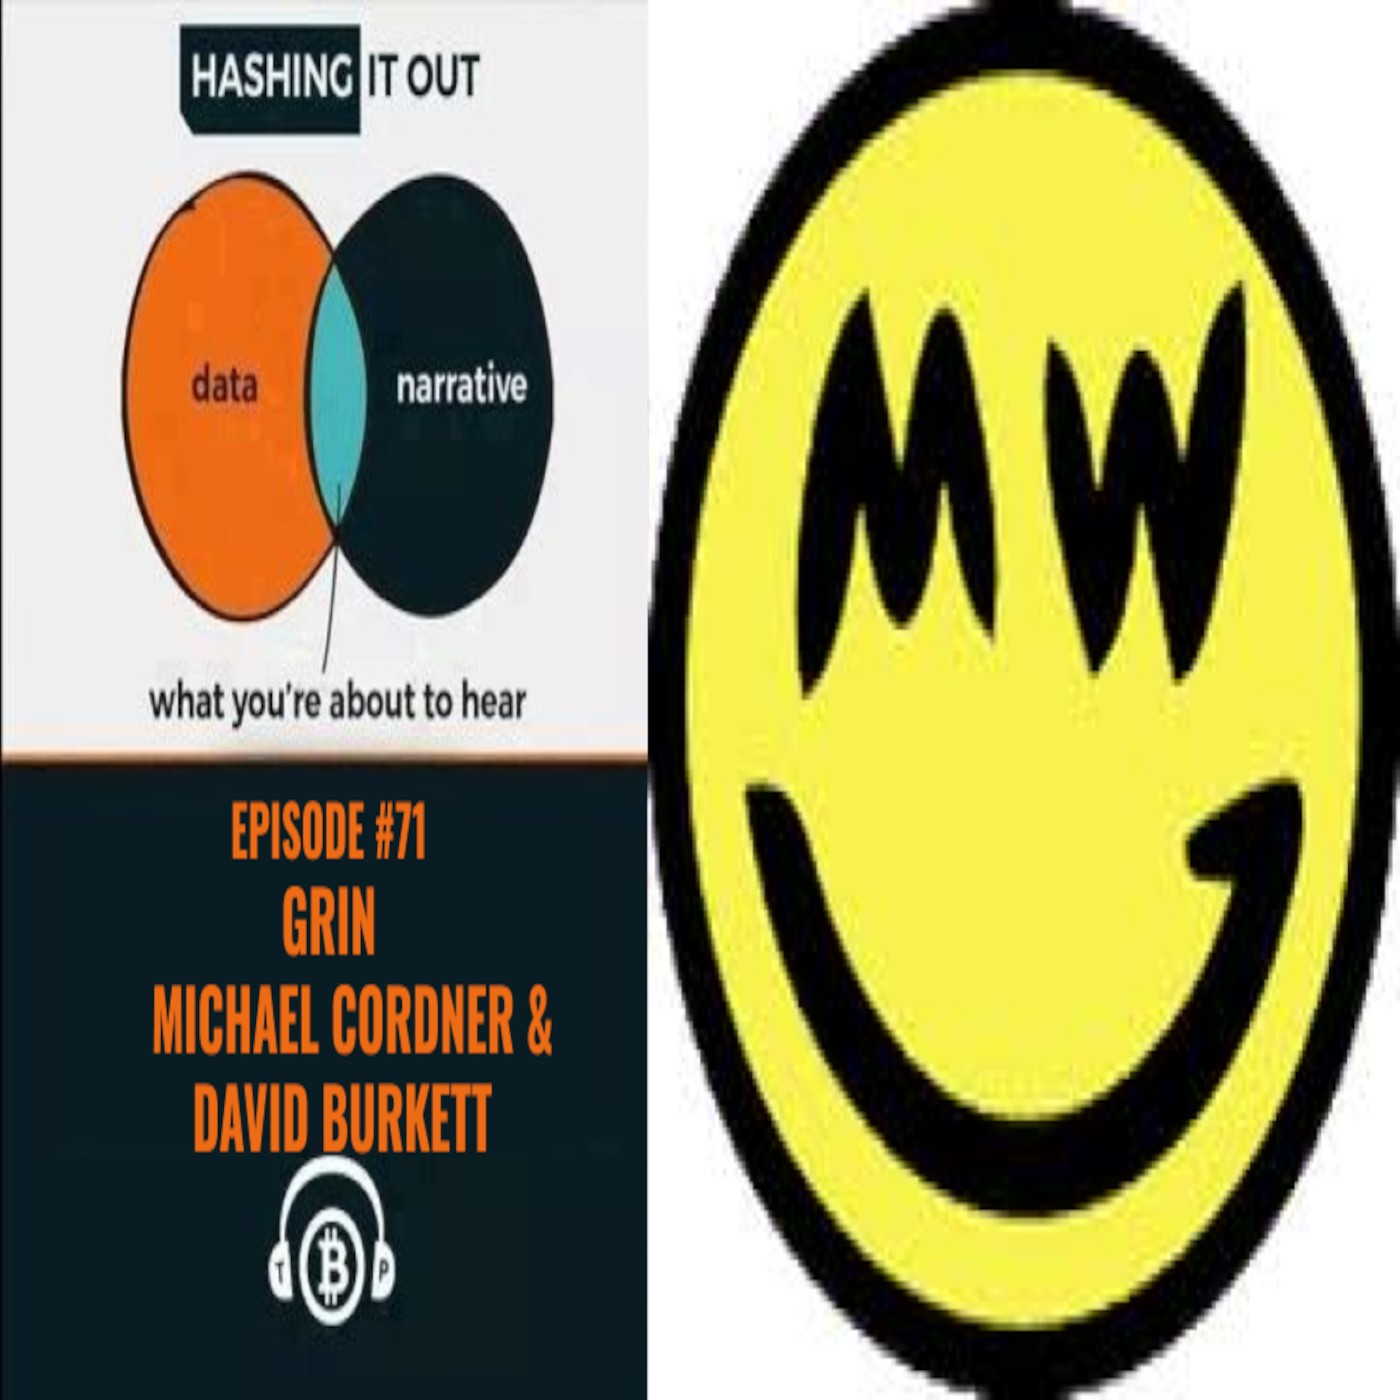 Hashing It Out  #EP 71-Grin-Michael Cordner and David Burkett